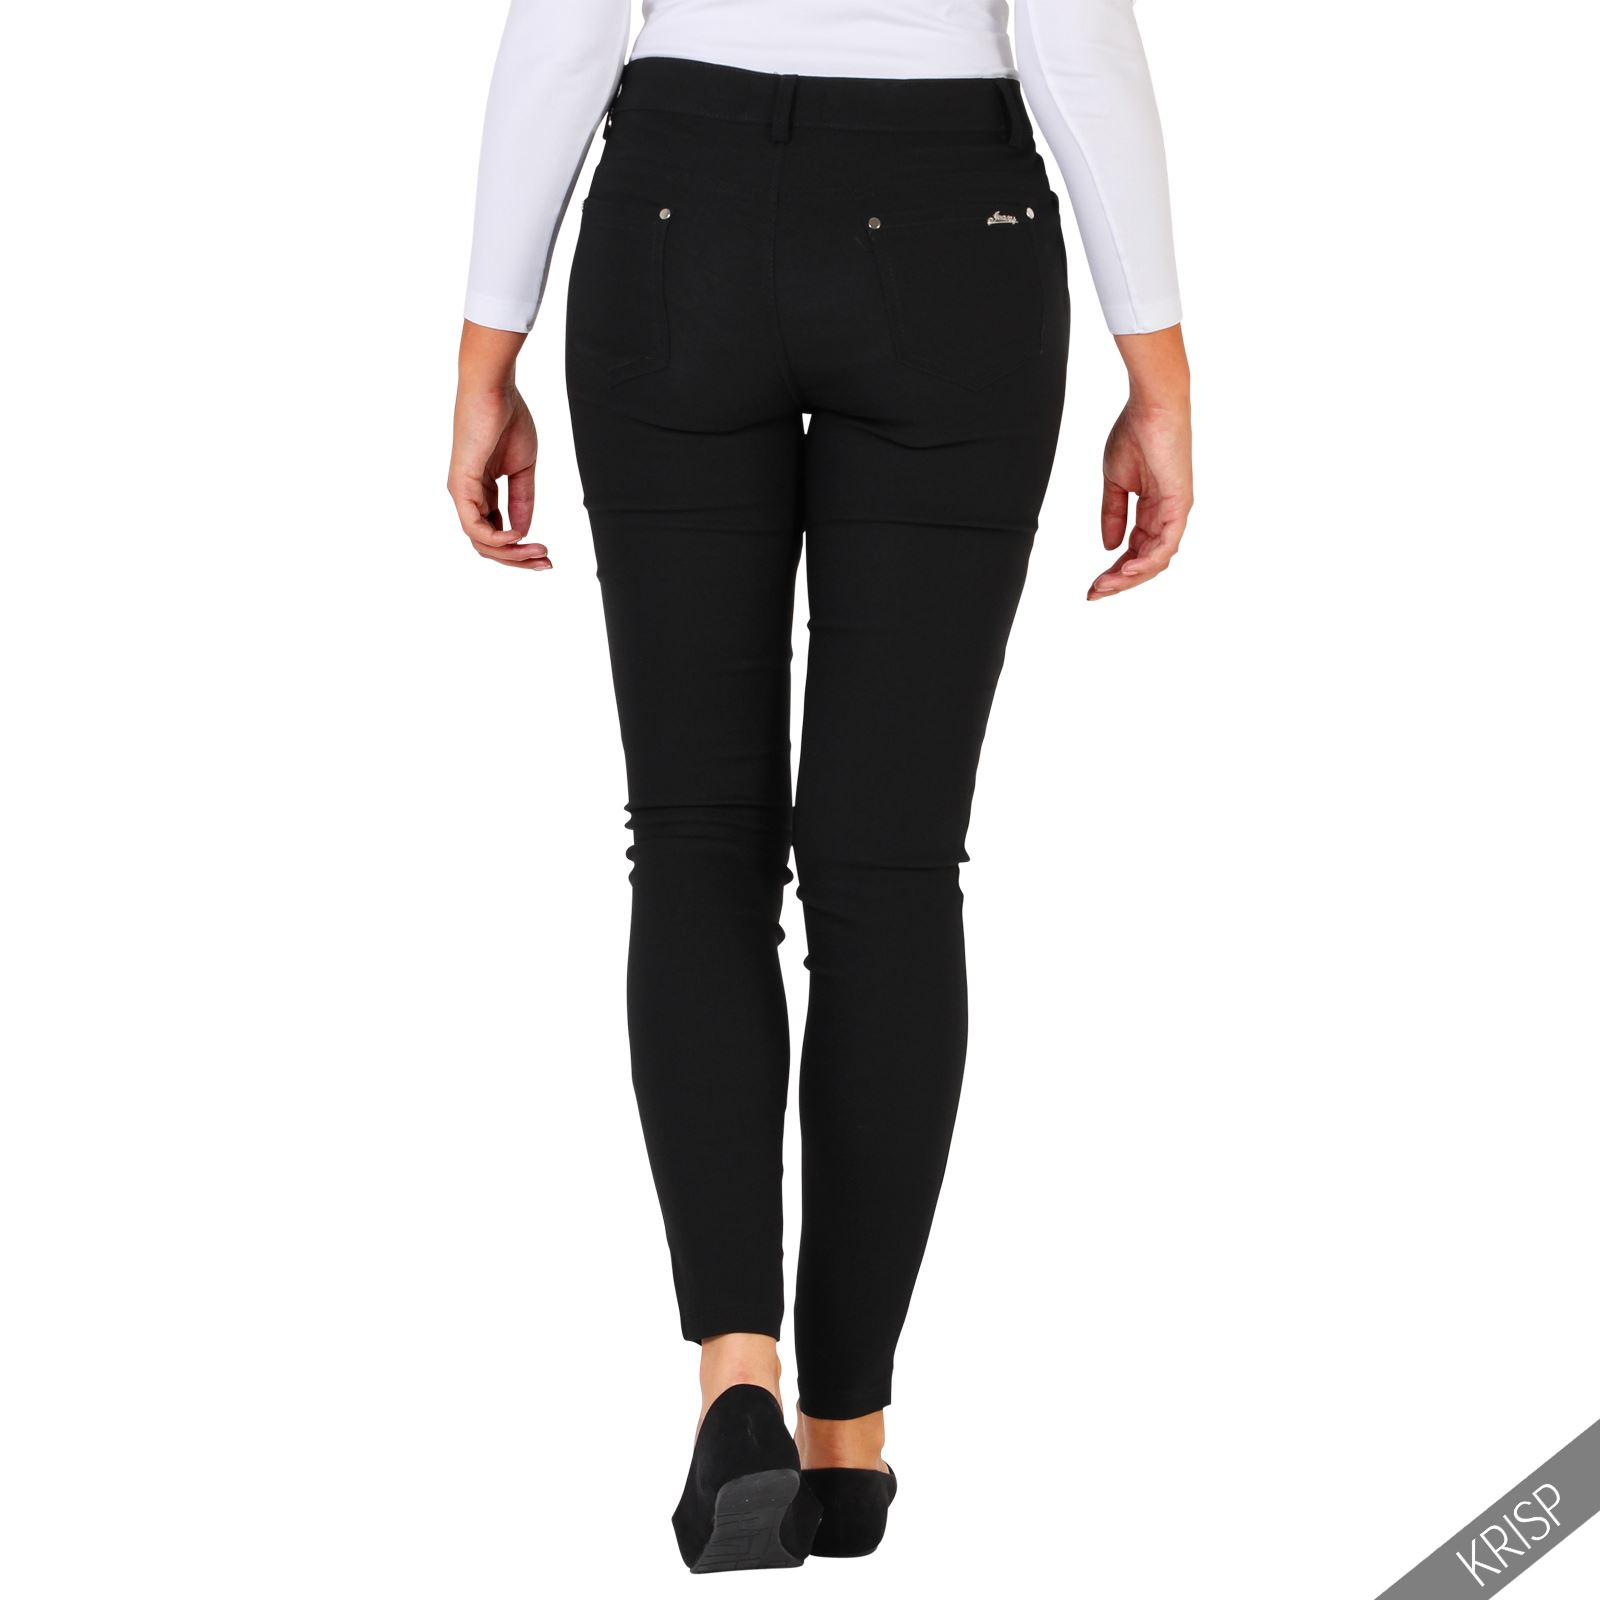 Elegant  Casual Work Attire Women Business Casual And Business Casual Clothes